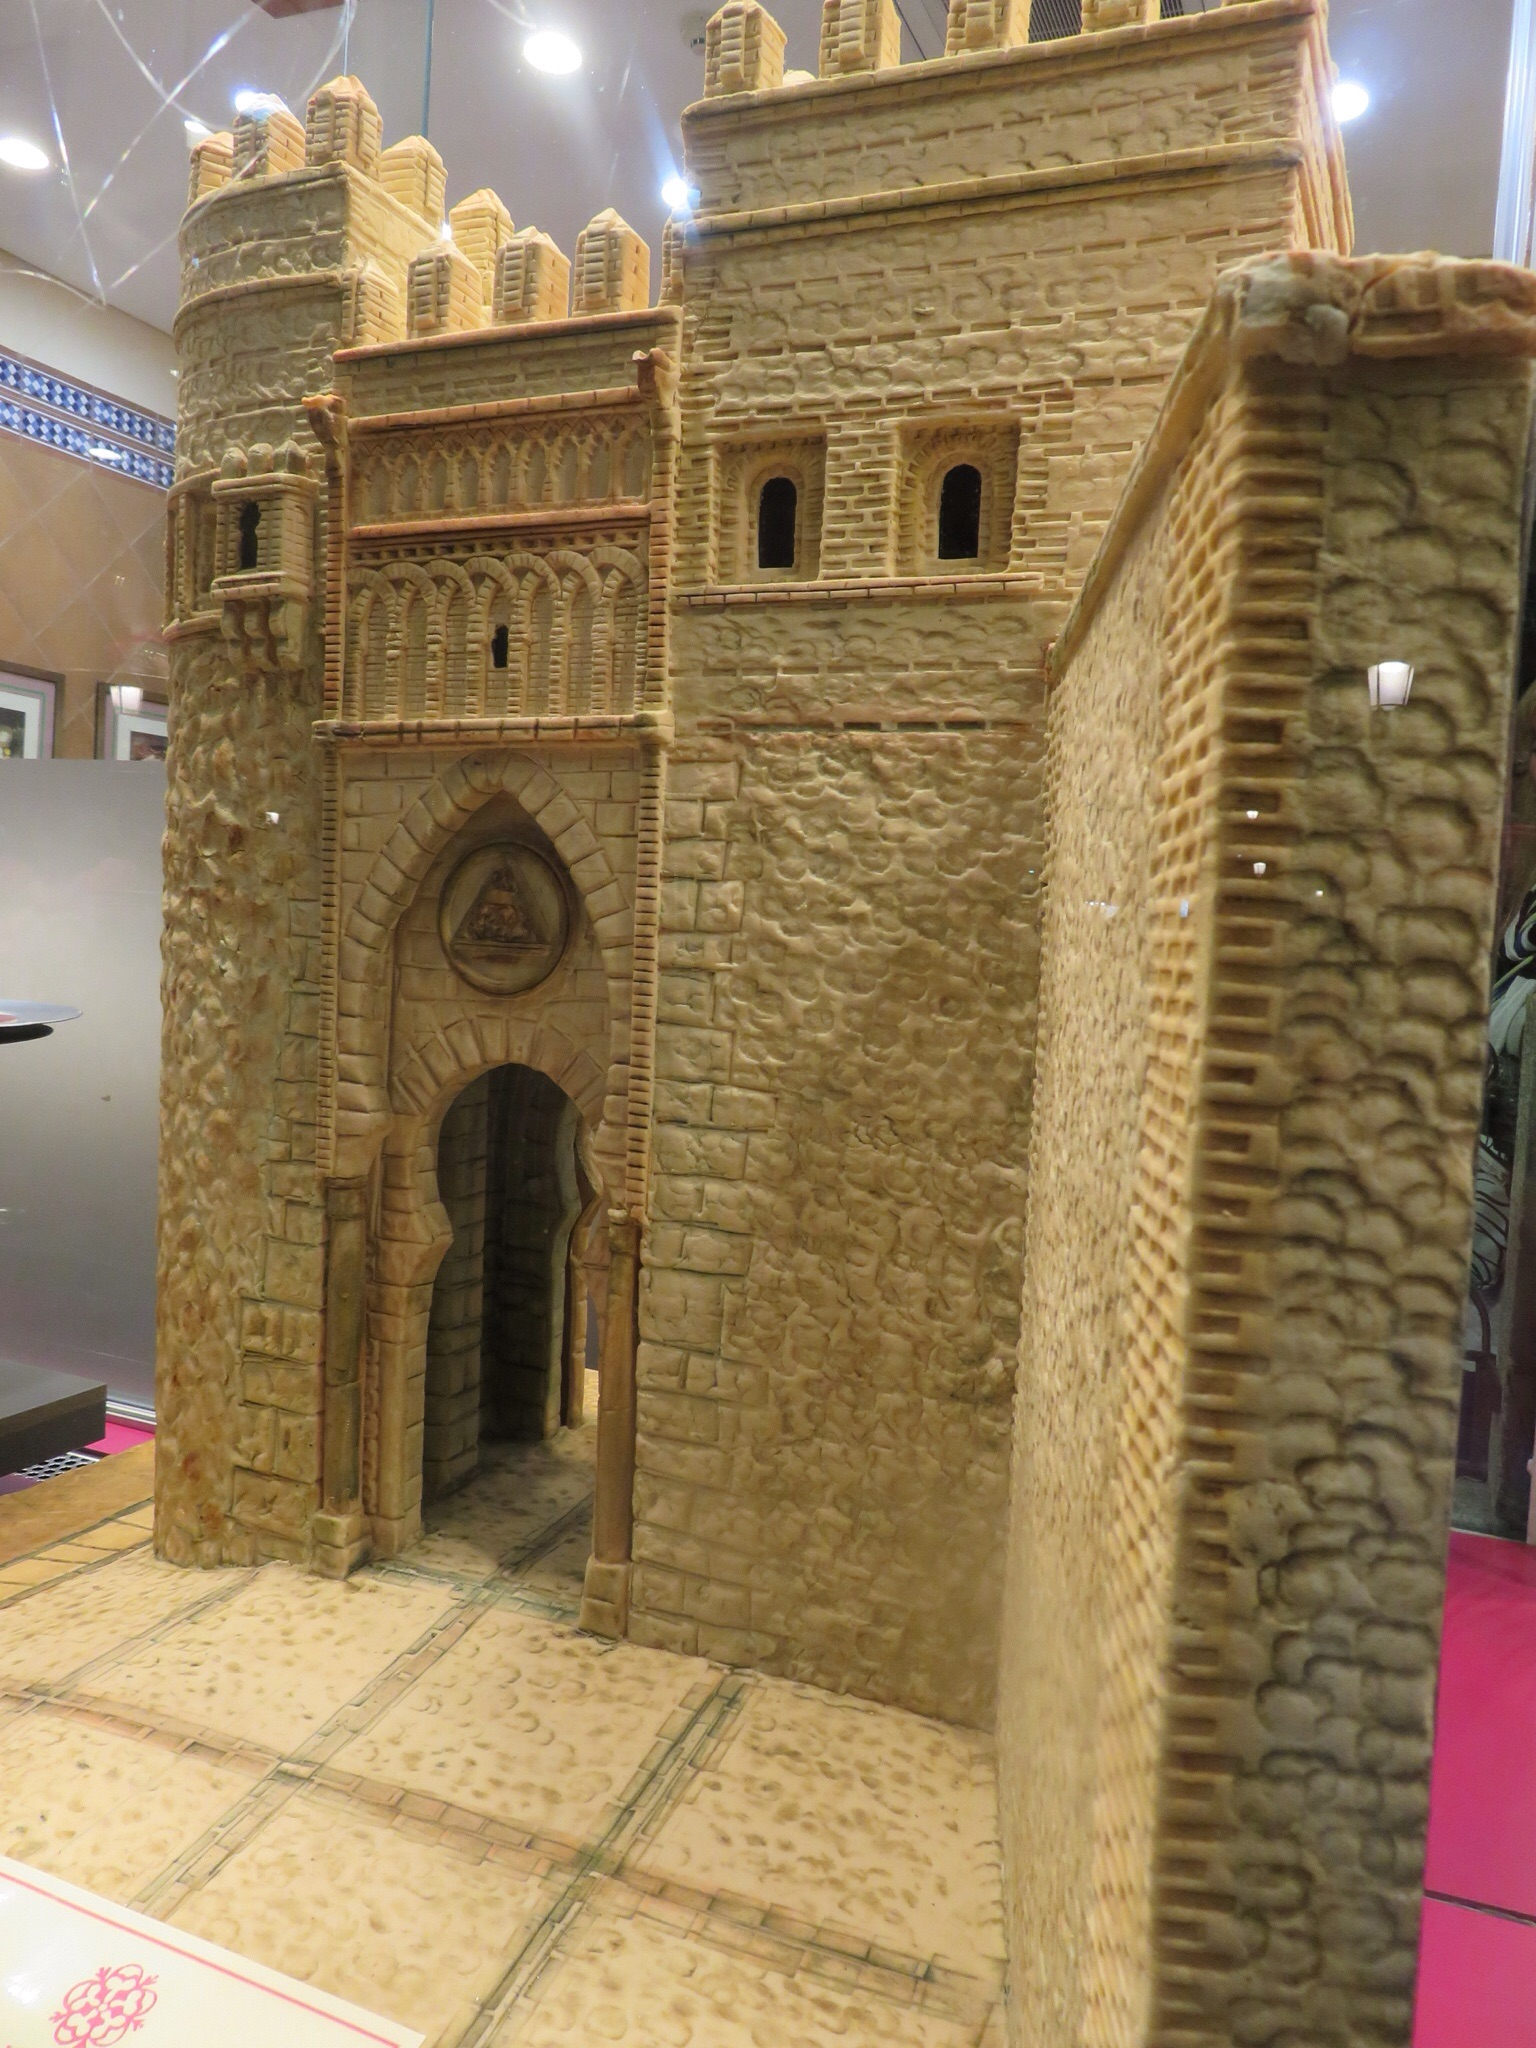 Model of one of the gateways made out of marzipan!